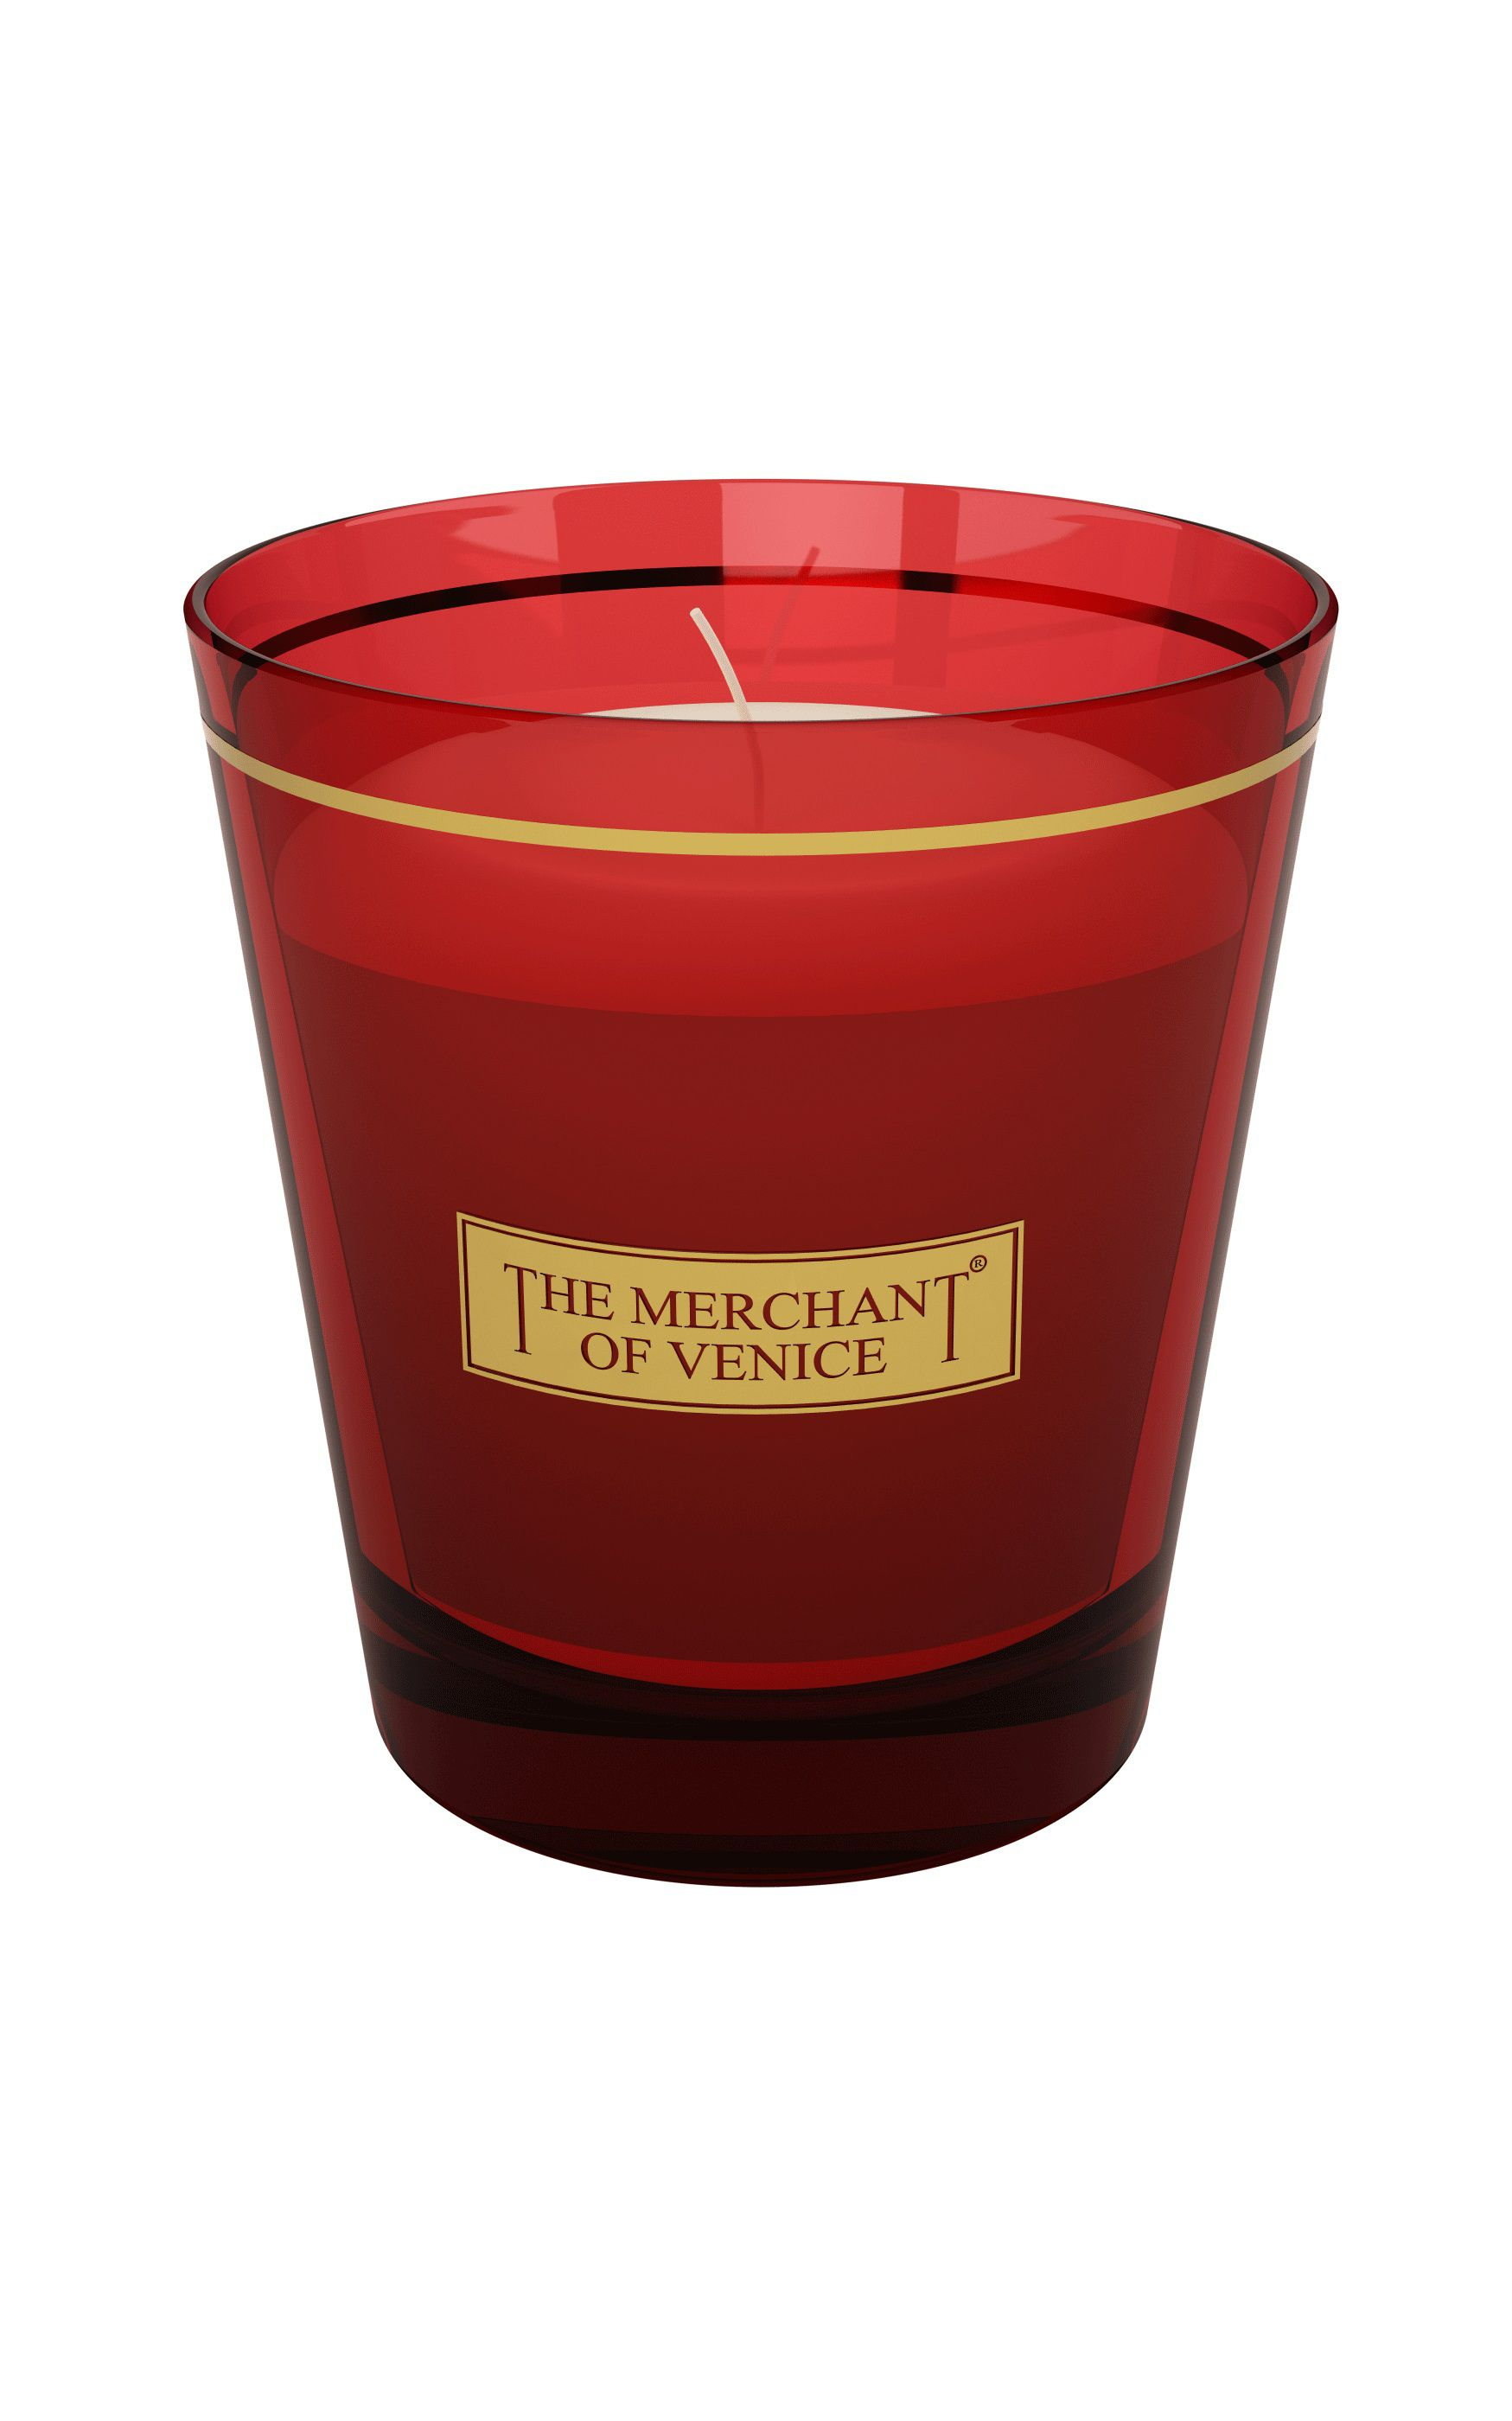 Image of The Merchant Of Venice Orange Flowers Perfumed Candle 230g